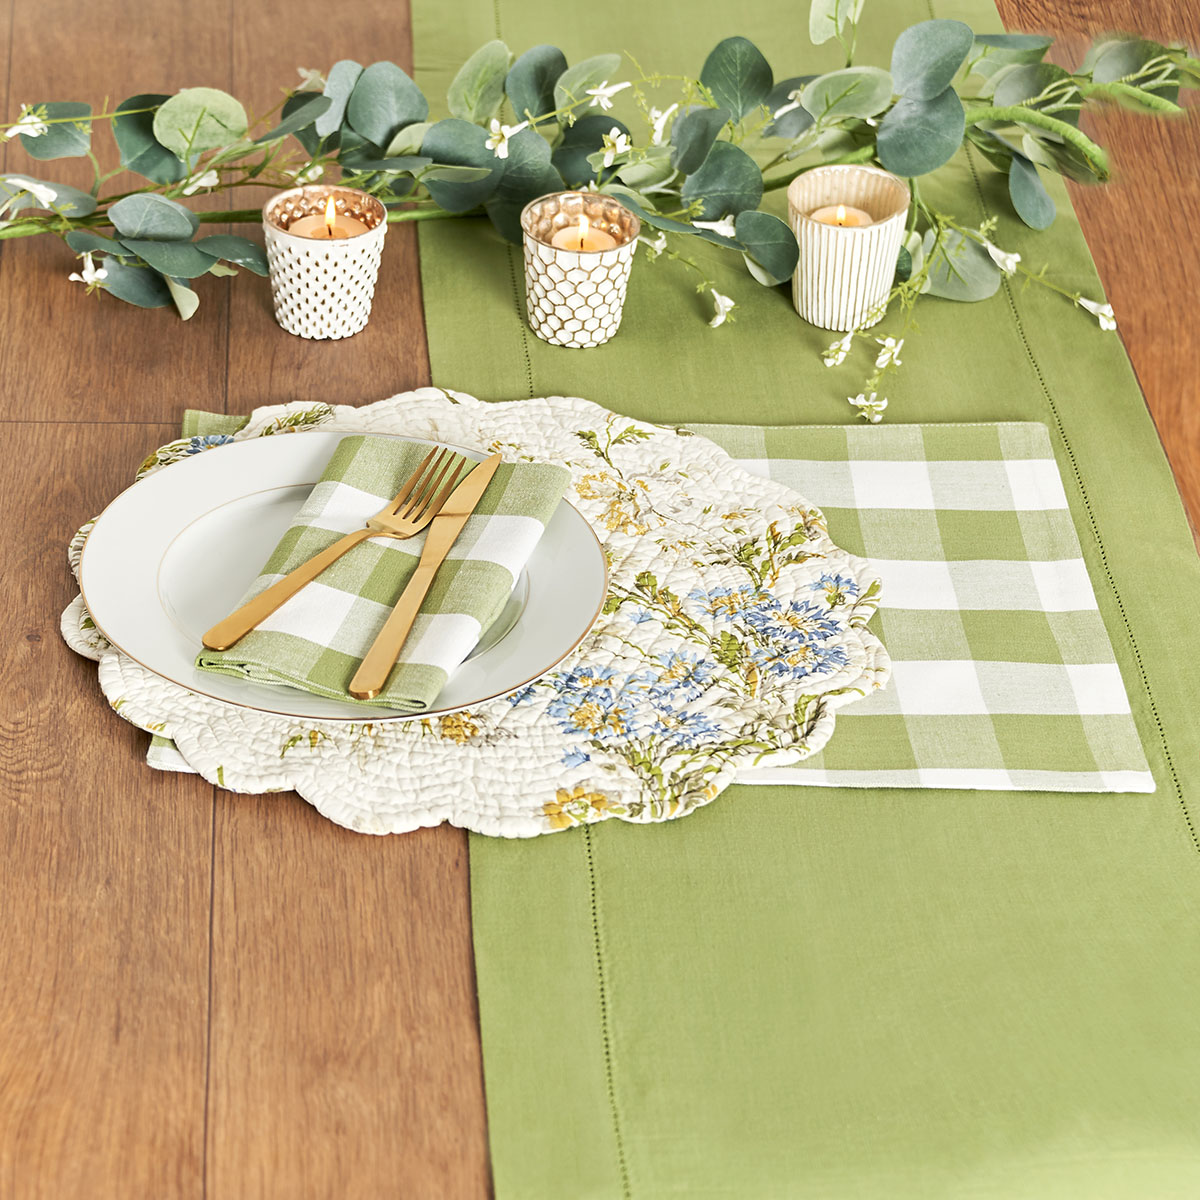 C&F Everyday Tabletop_Table Runners.jpg